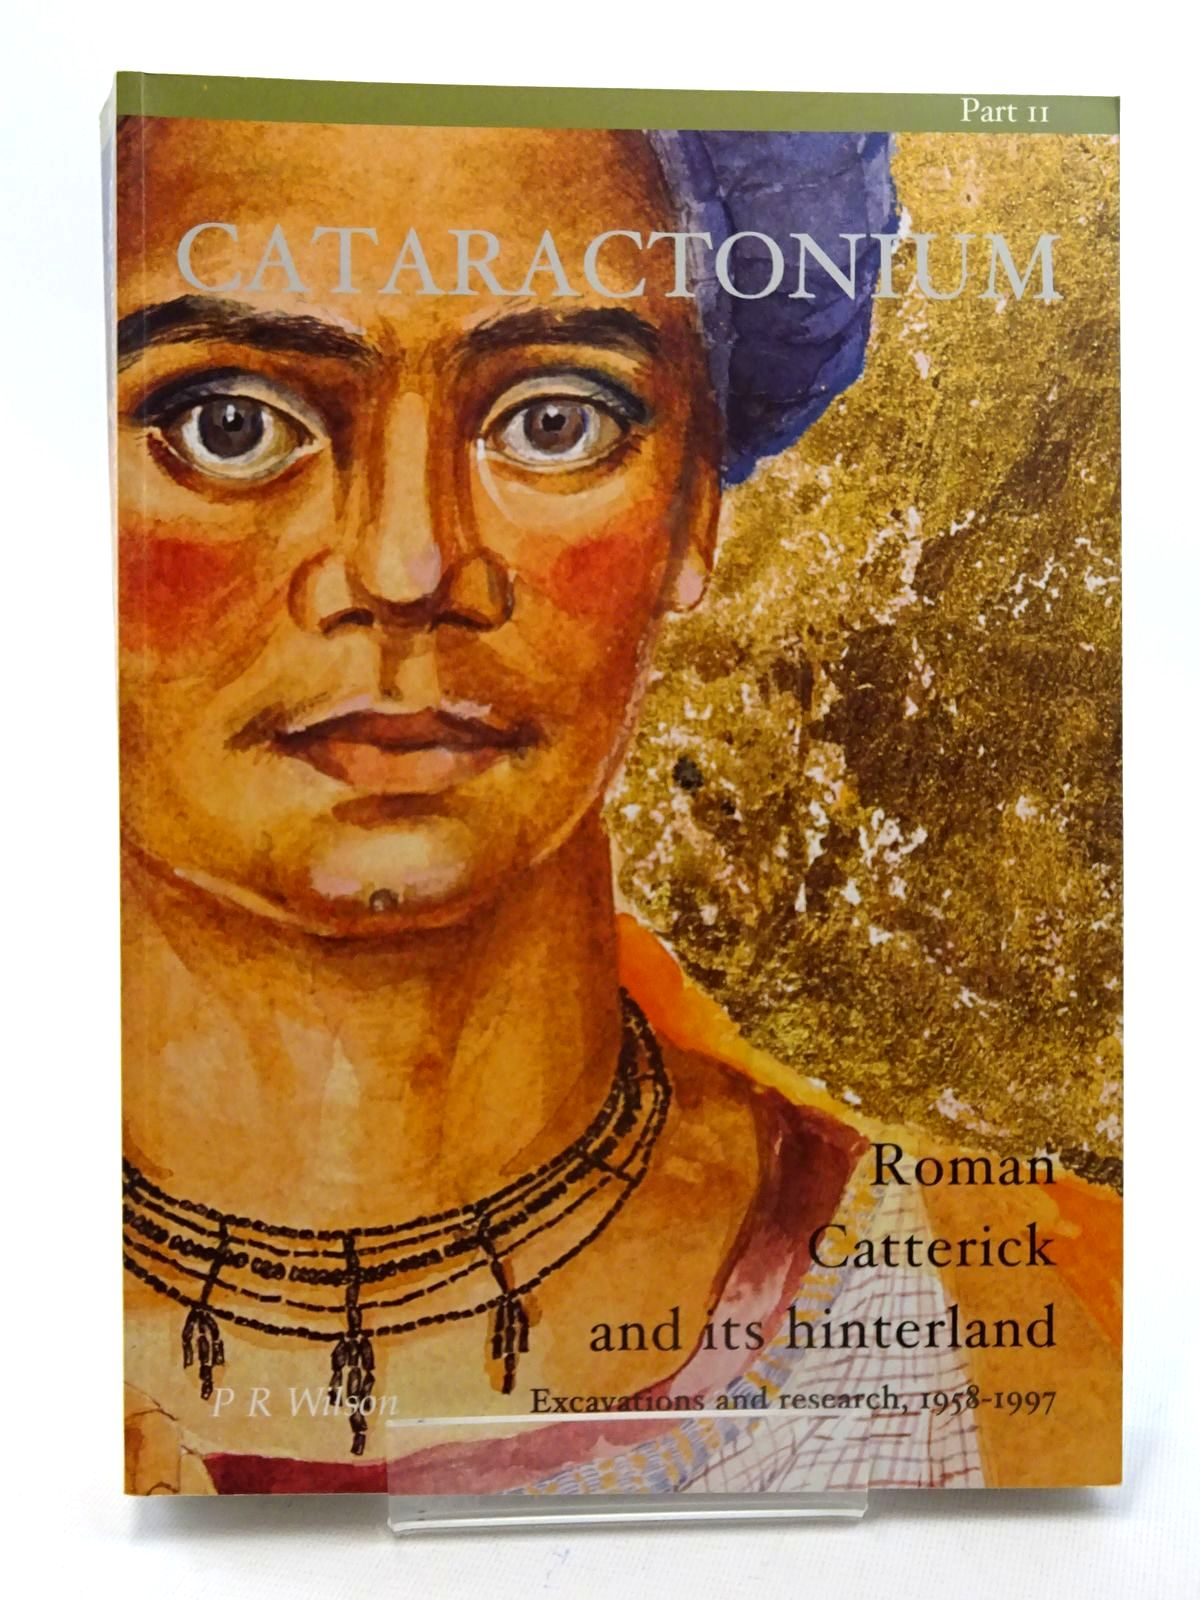 Photo of CATARACTONIUM: ROMAN CATTERICK AND ITS HINTERLAND. EXCAVATIONS AND RESEARCH, 1958-1997 PART II written by Wilson, P.R.